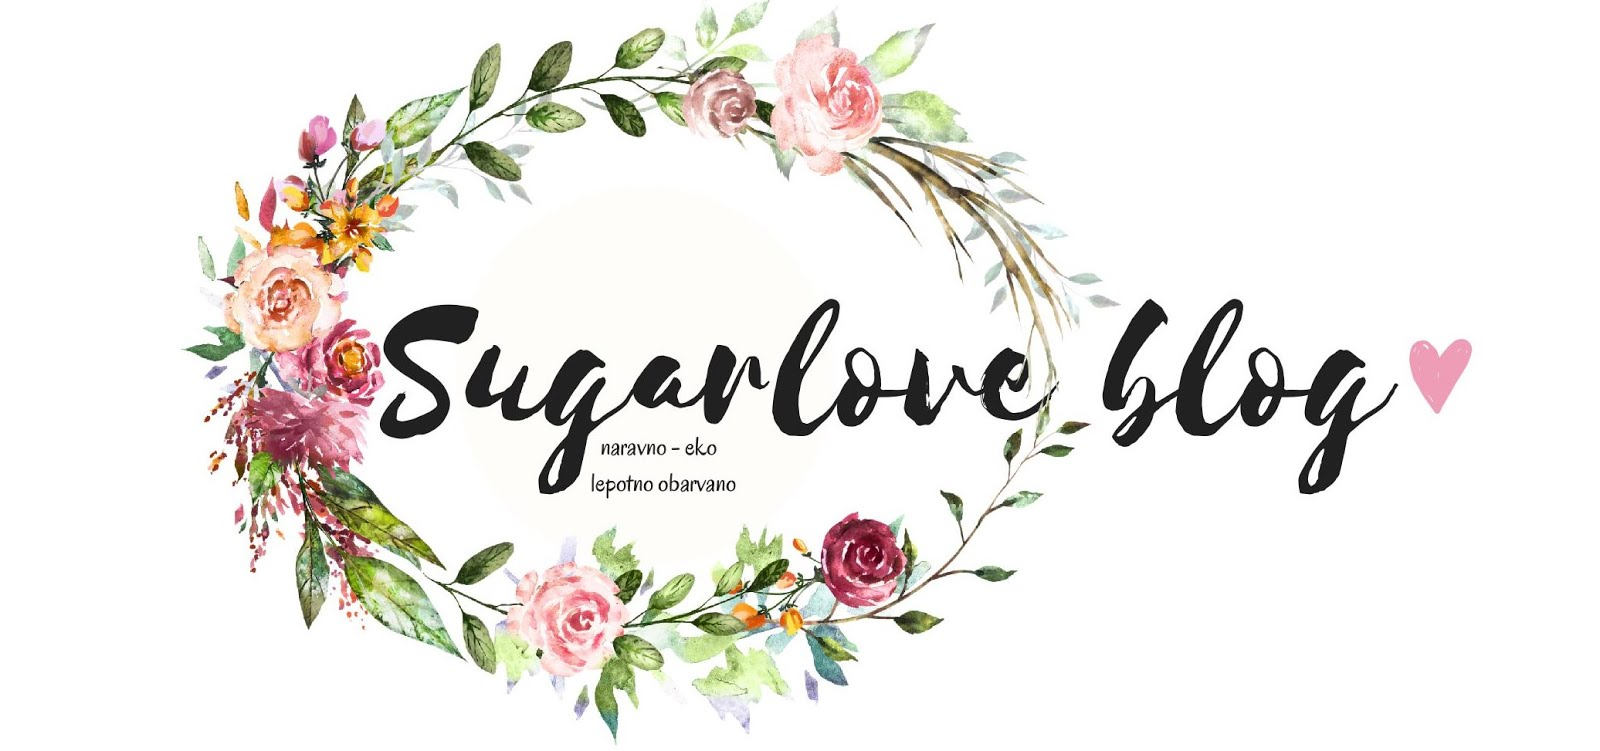 Sugarlove blog